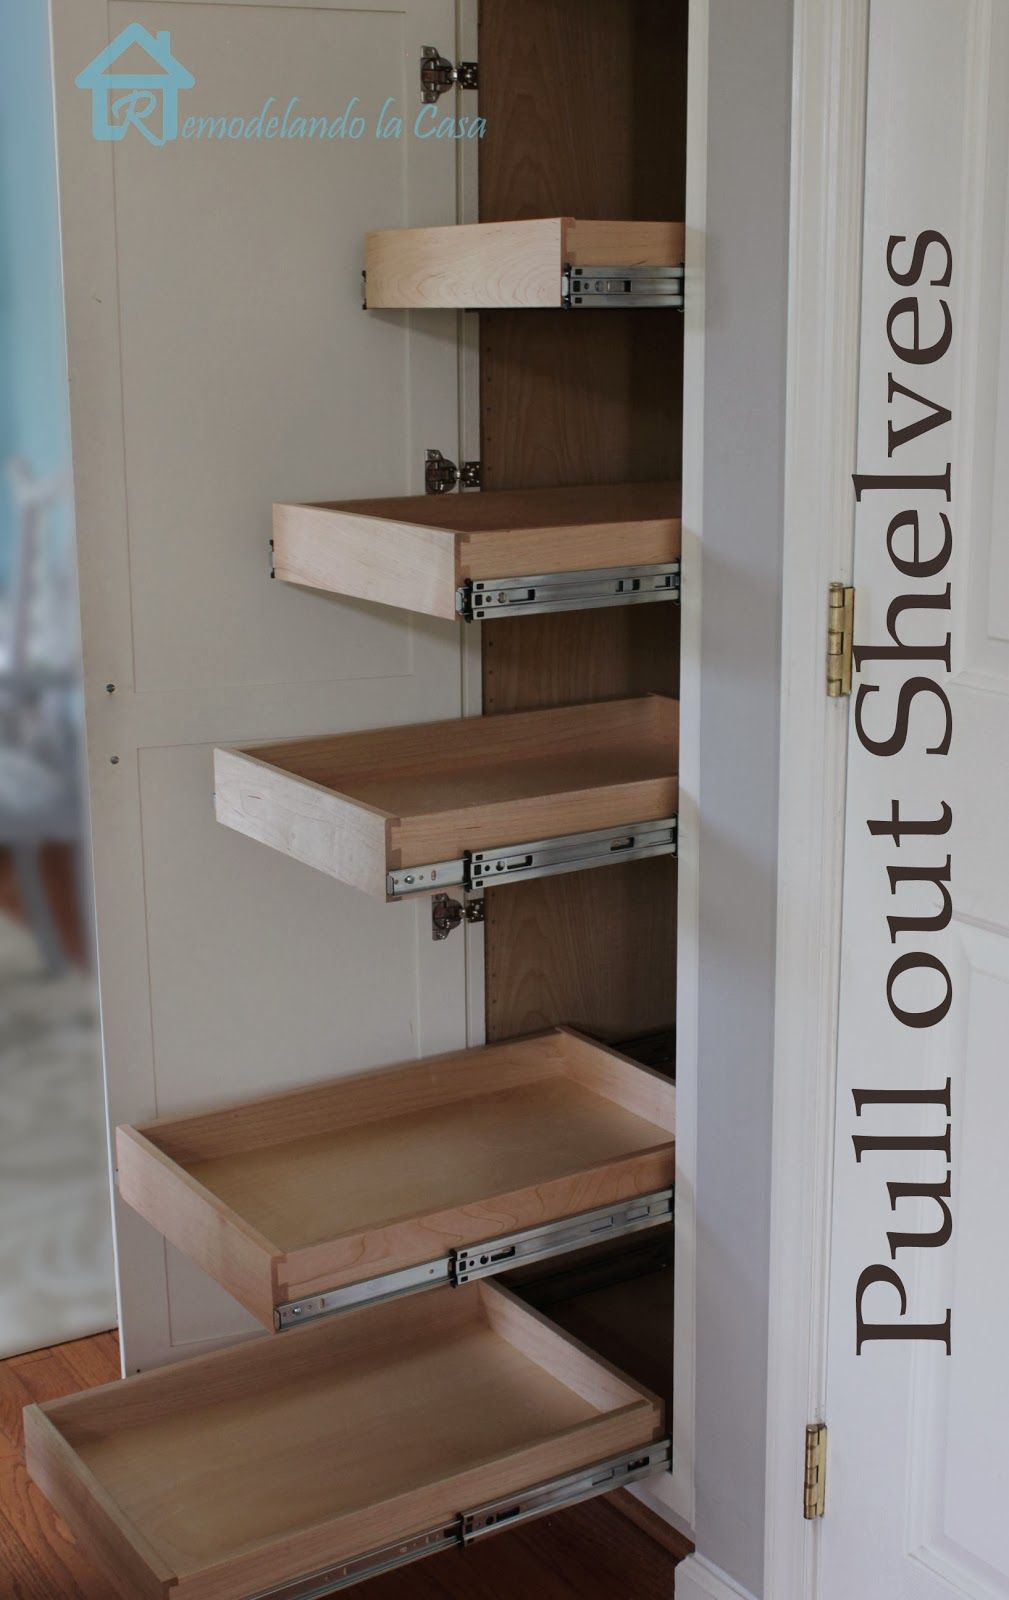 Küchendesign 2018 kitchen organization  pull out shelves in pantry in   for the